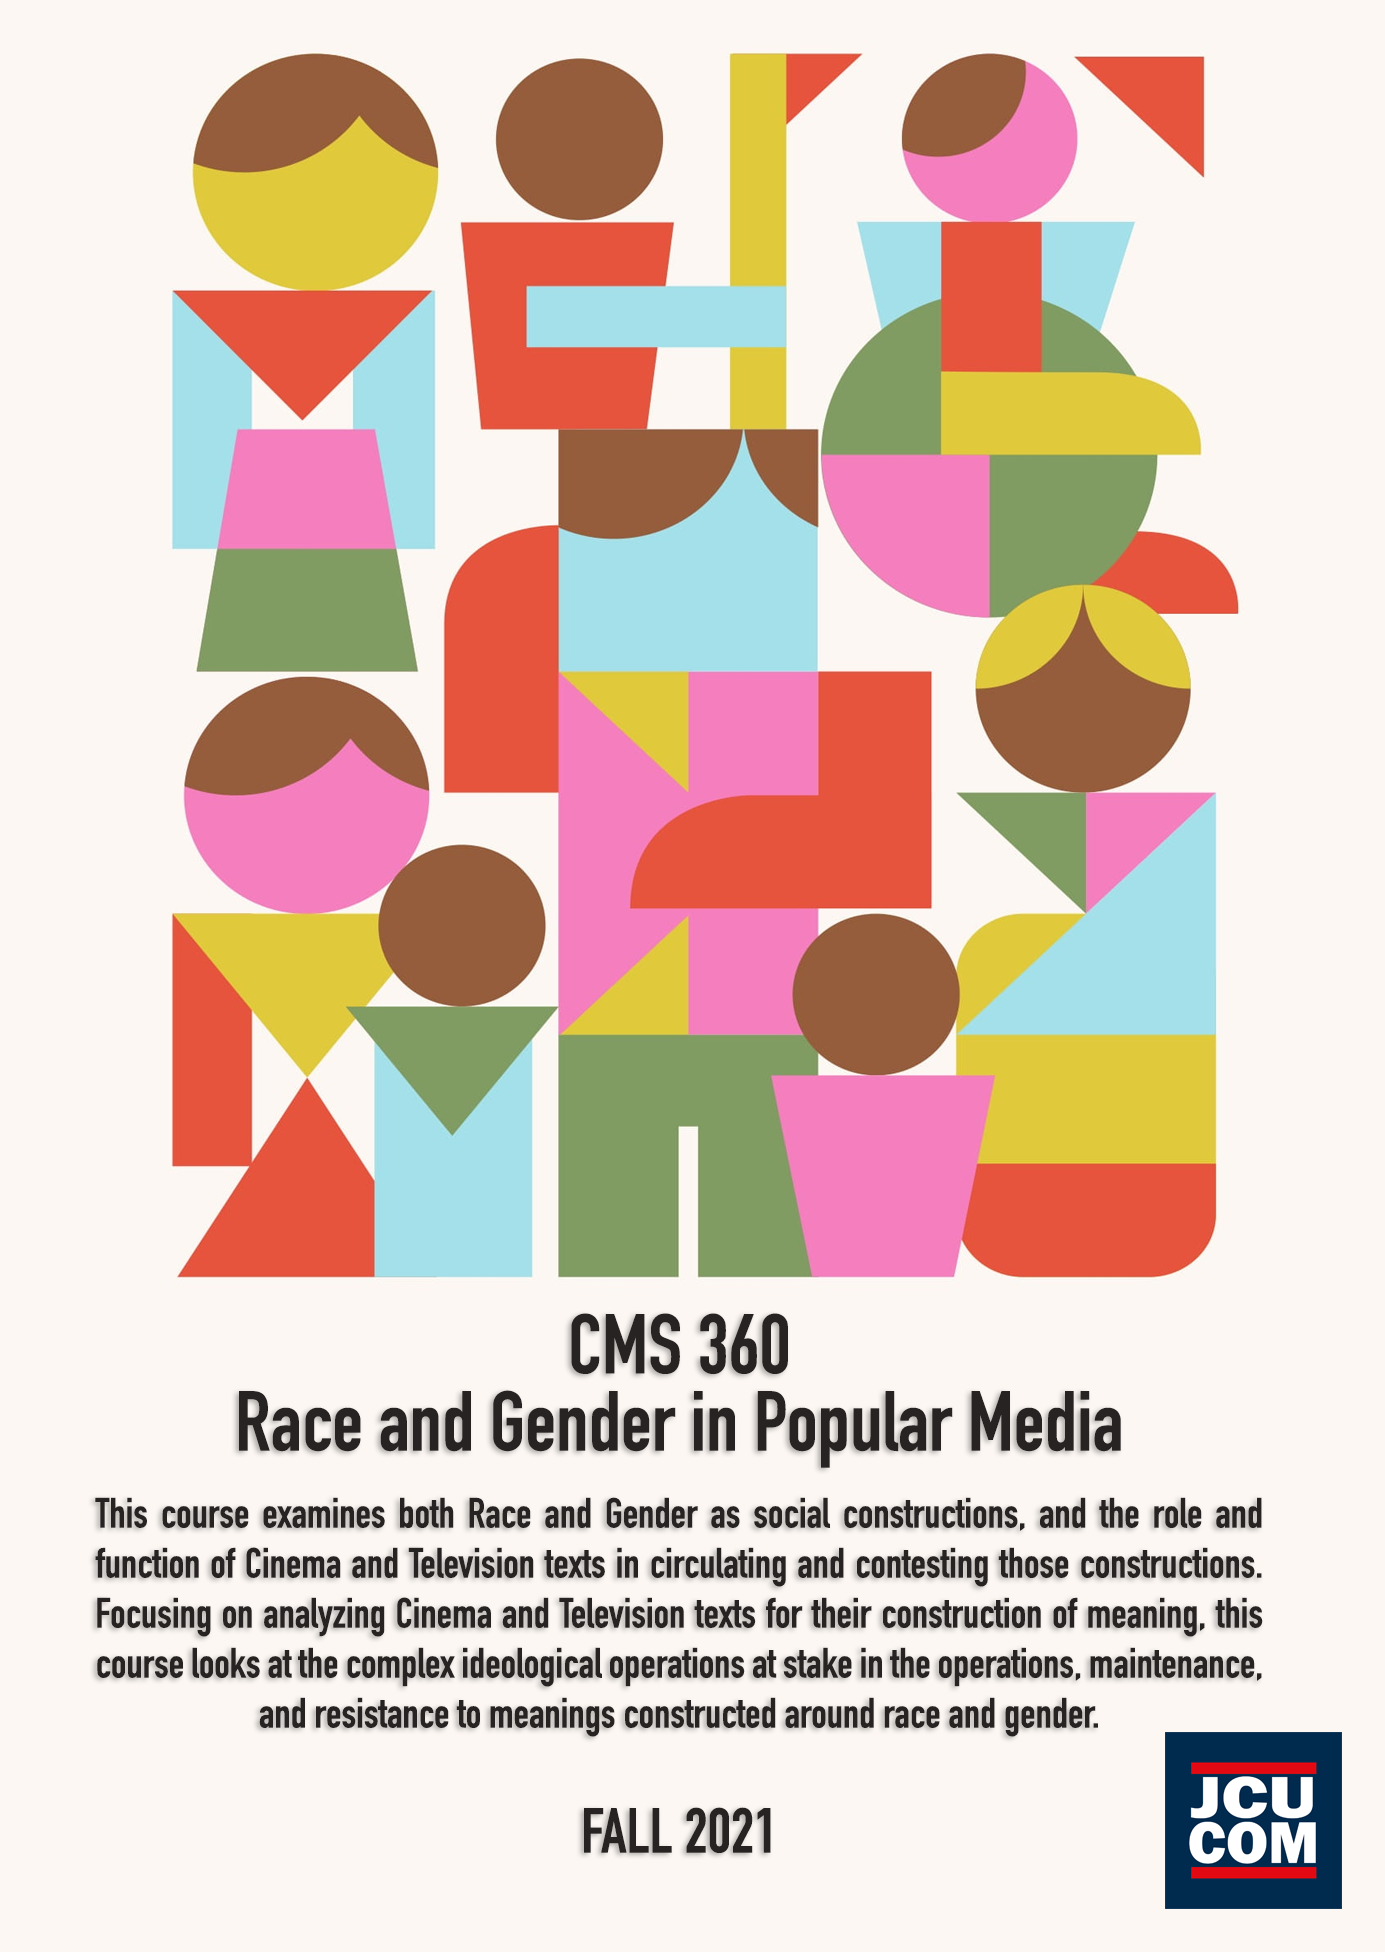 CMS 360 - Race and Gender in Popular Media